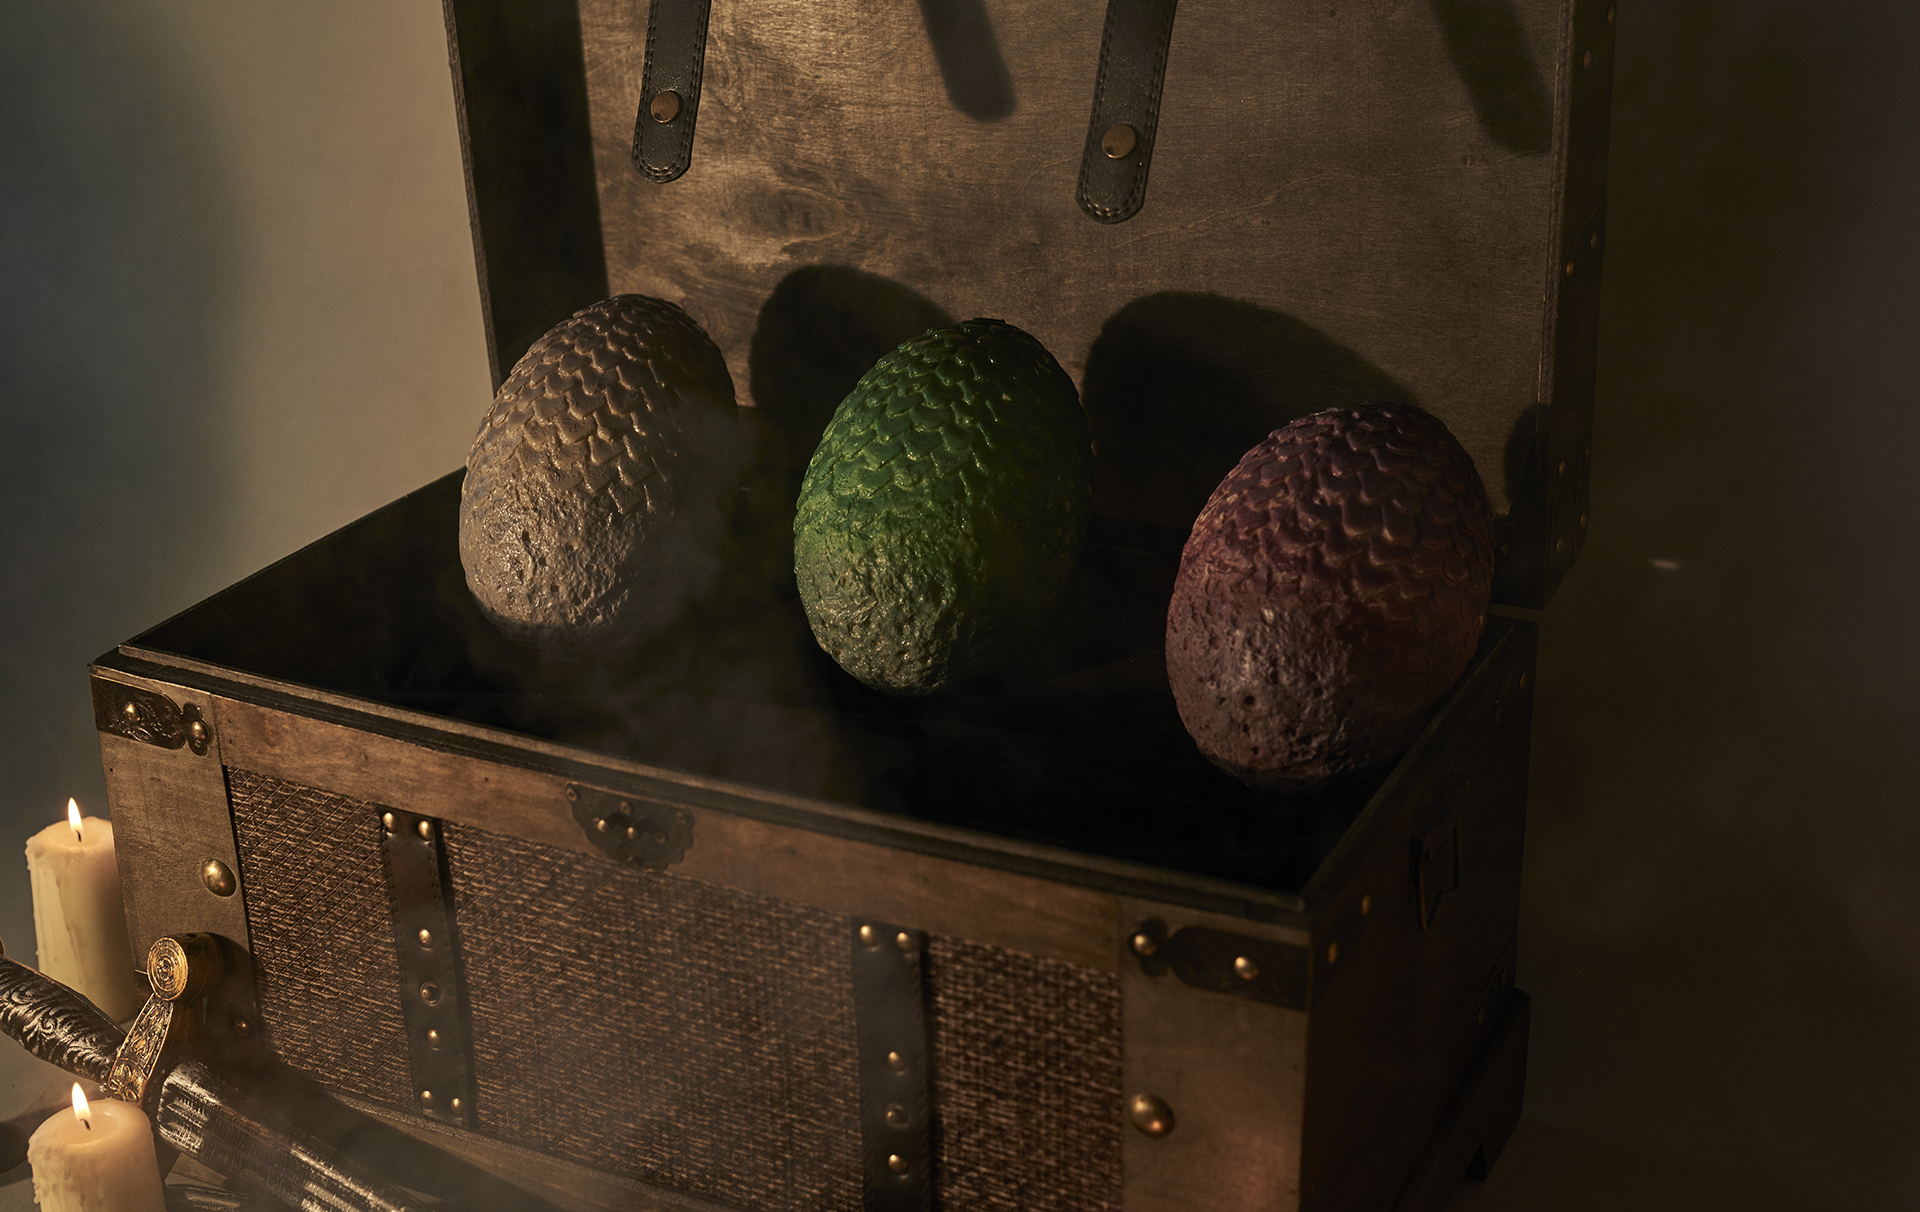 deliveroo game of thrones easter eggs